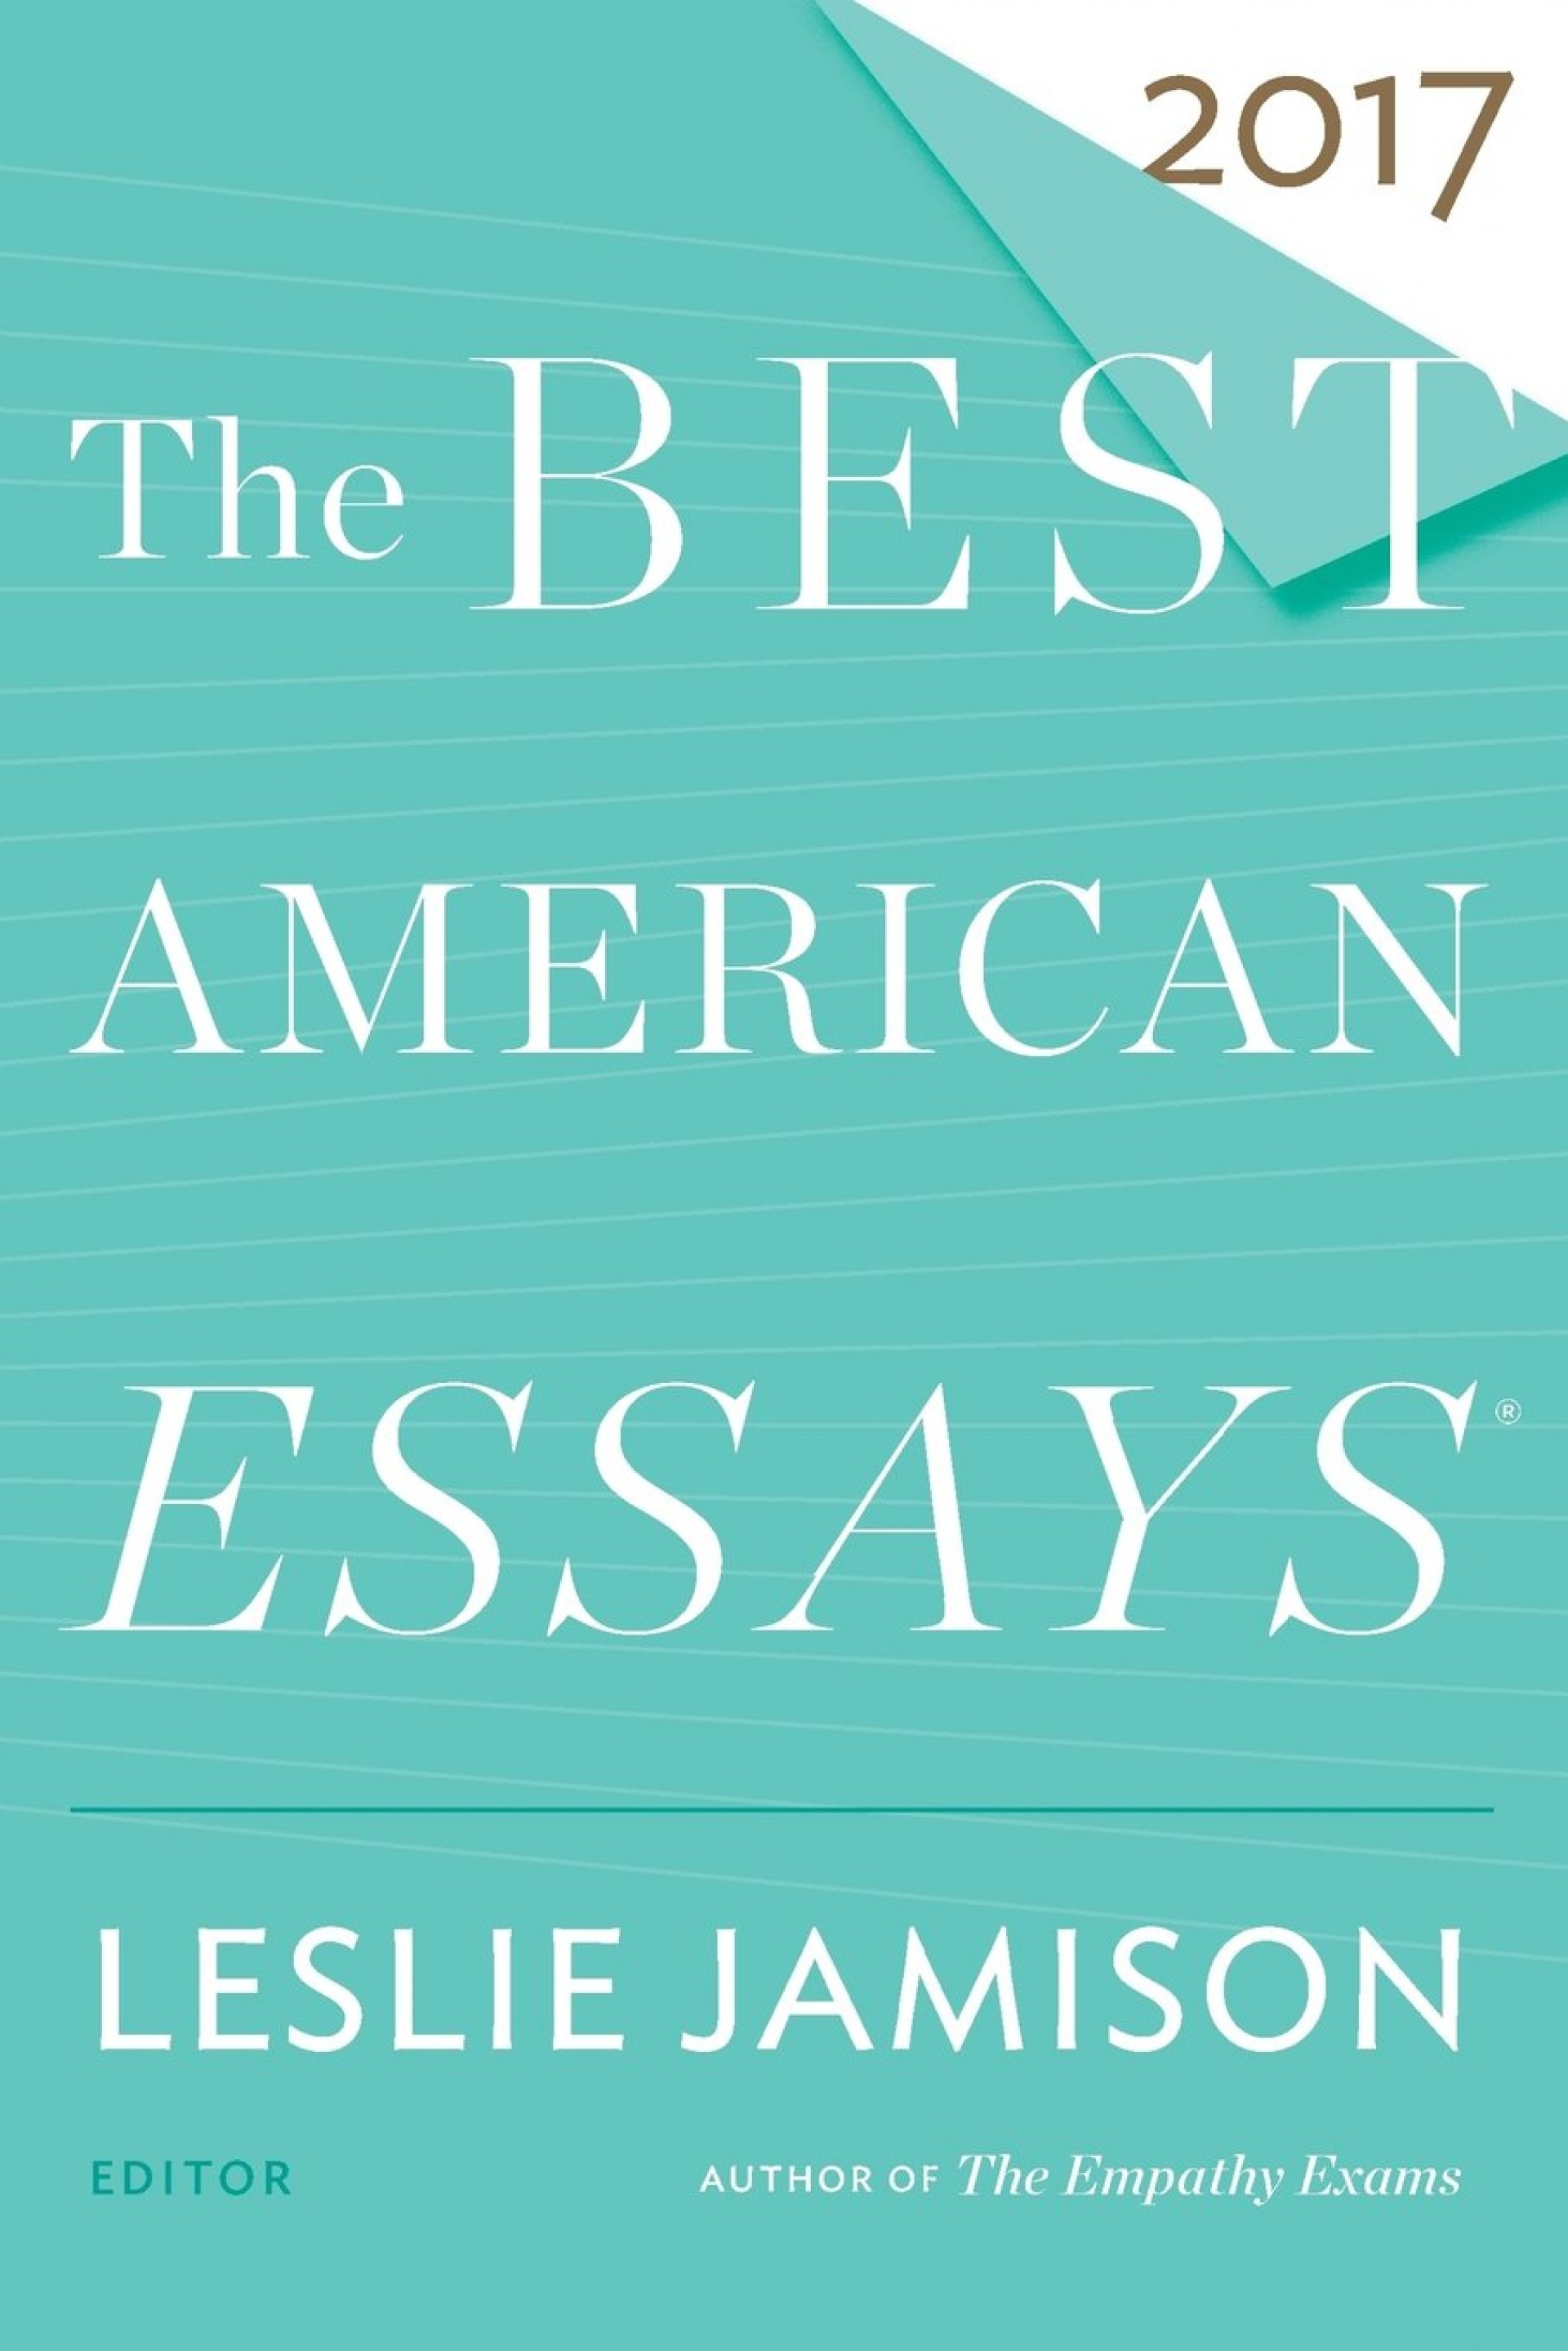 001 Best American Essays 61tzl Nruvl Essay Astounding 2017 Submissions Pdf Free Download 1920